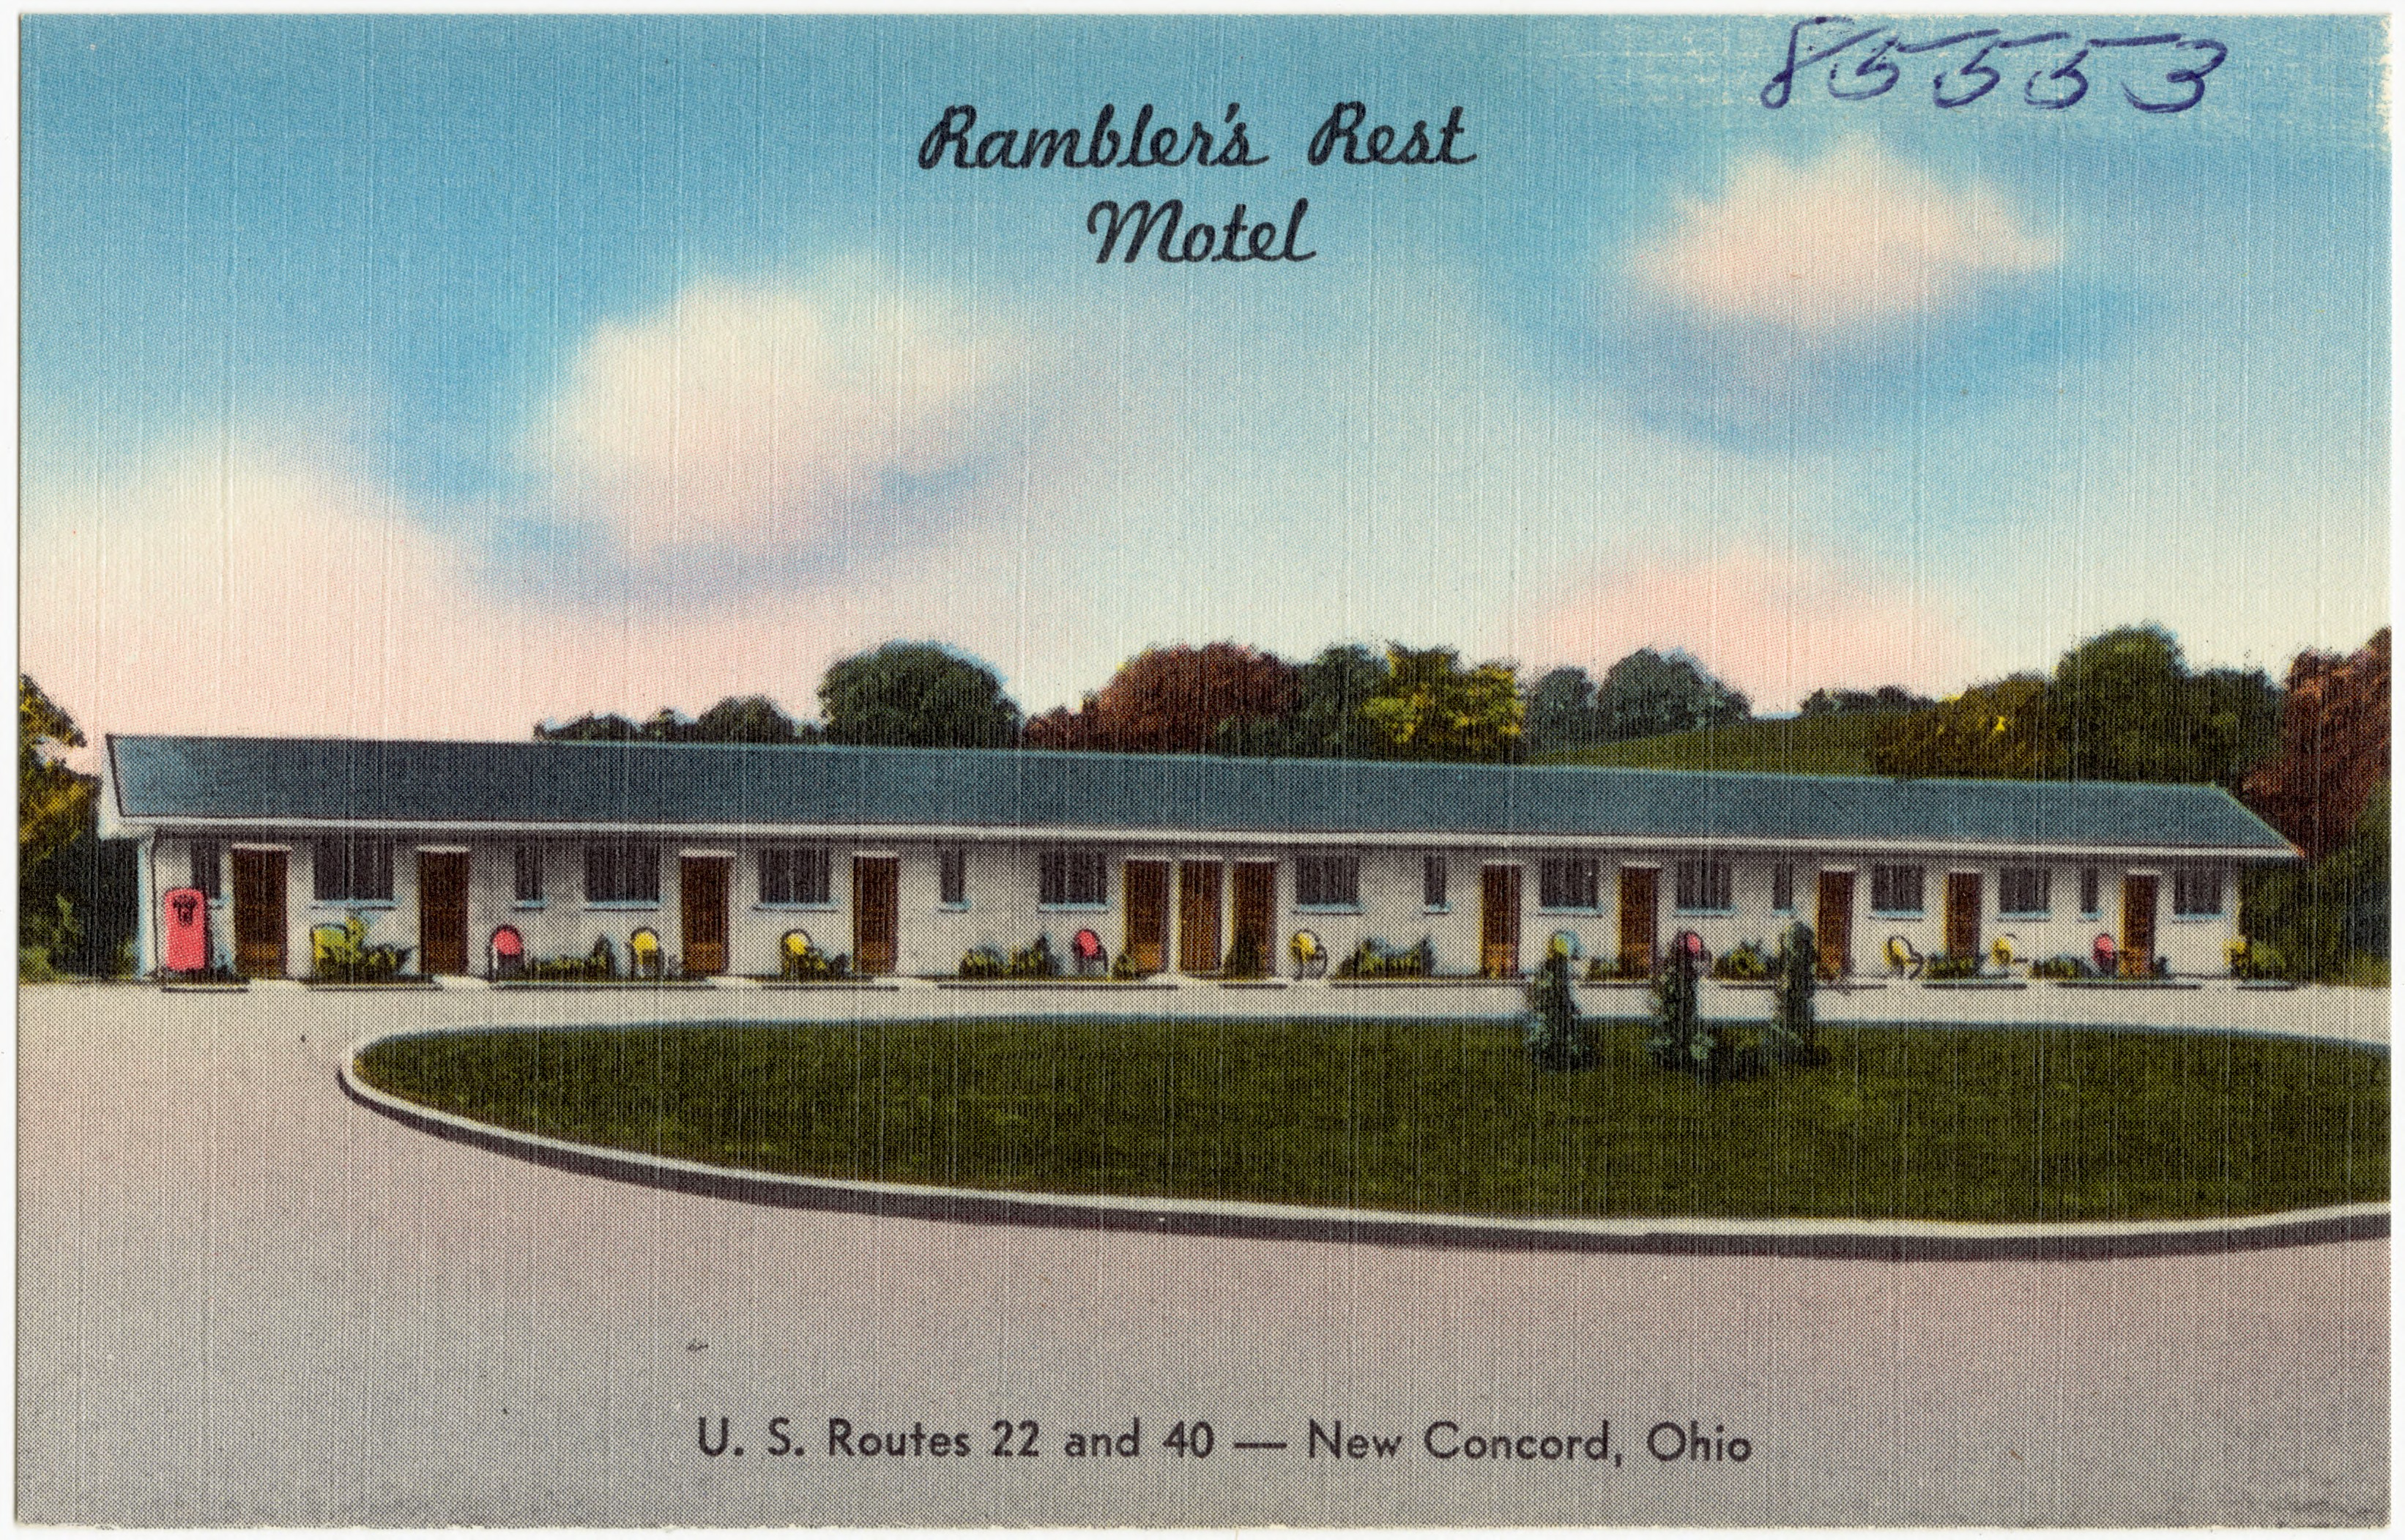 Ohio muskingum county new concord - File Rambler S Rest Motel U S Routes 22 And 40 New Concord